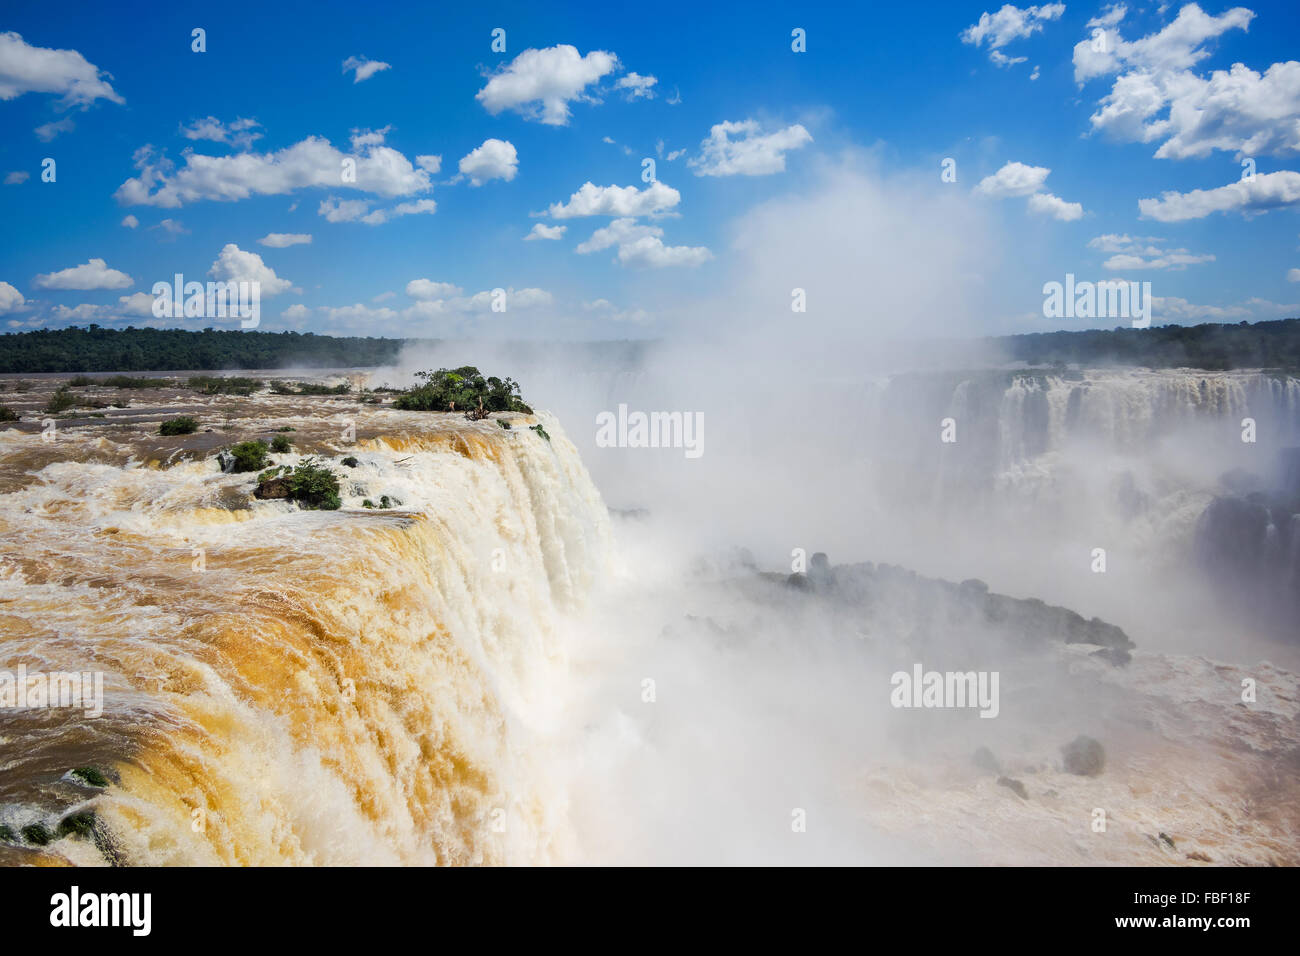 Iguassu Falls, on the border of Argentina and Brazil. - Stock Image